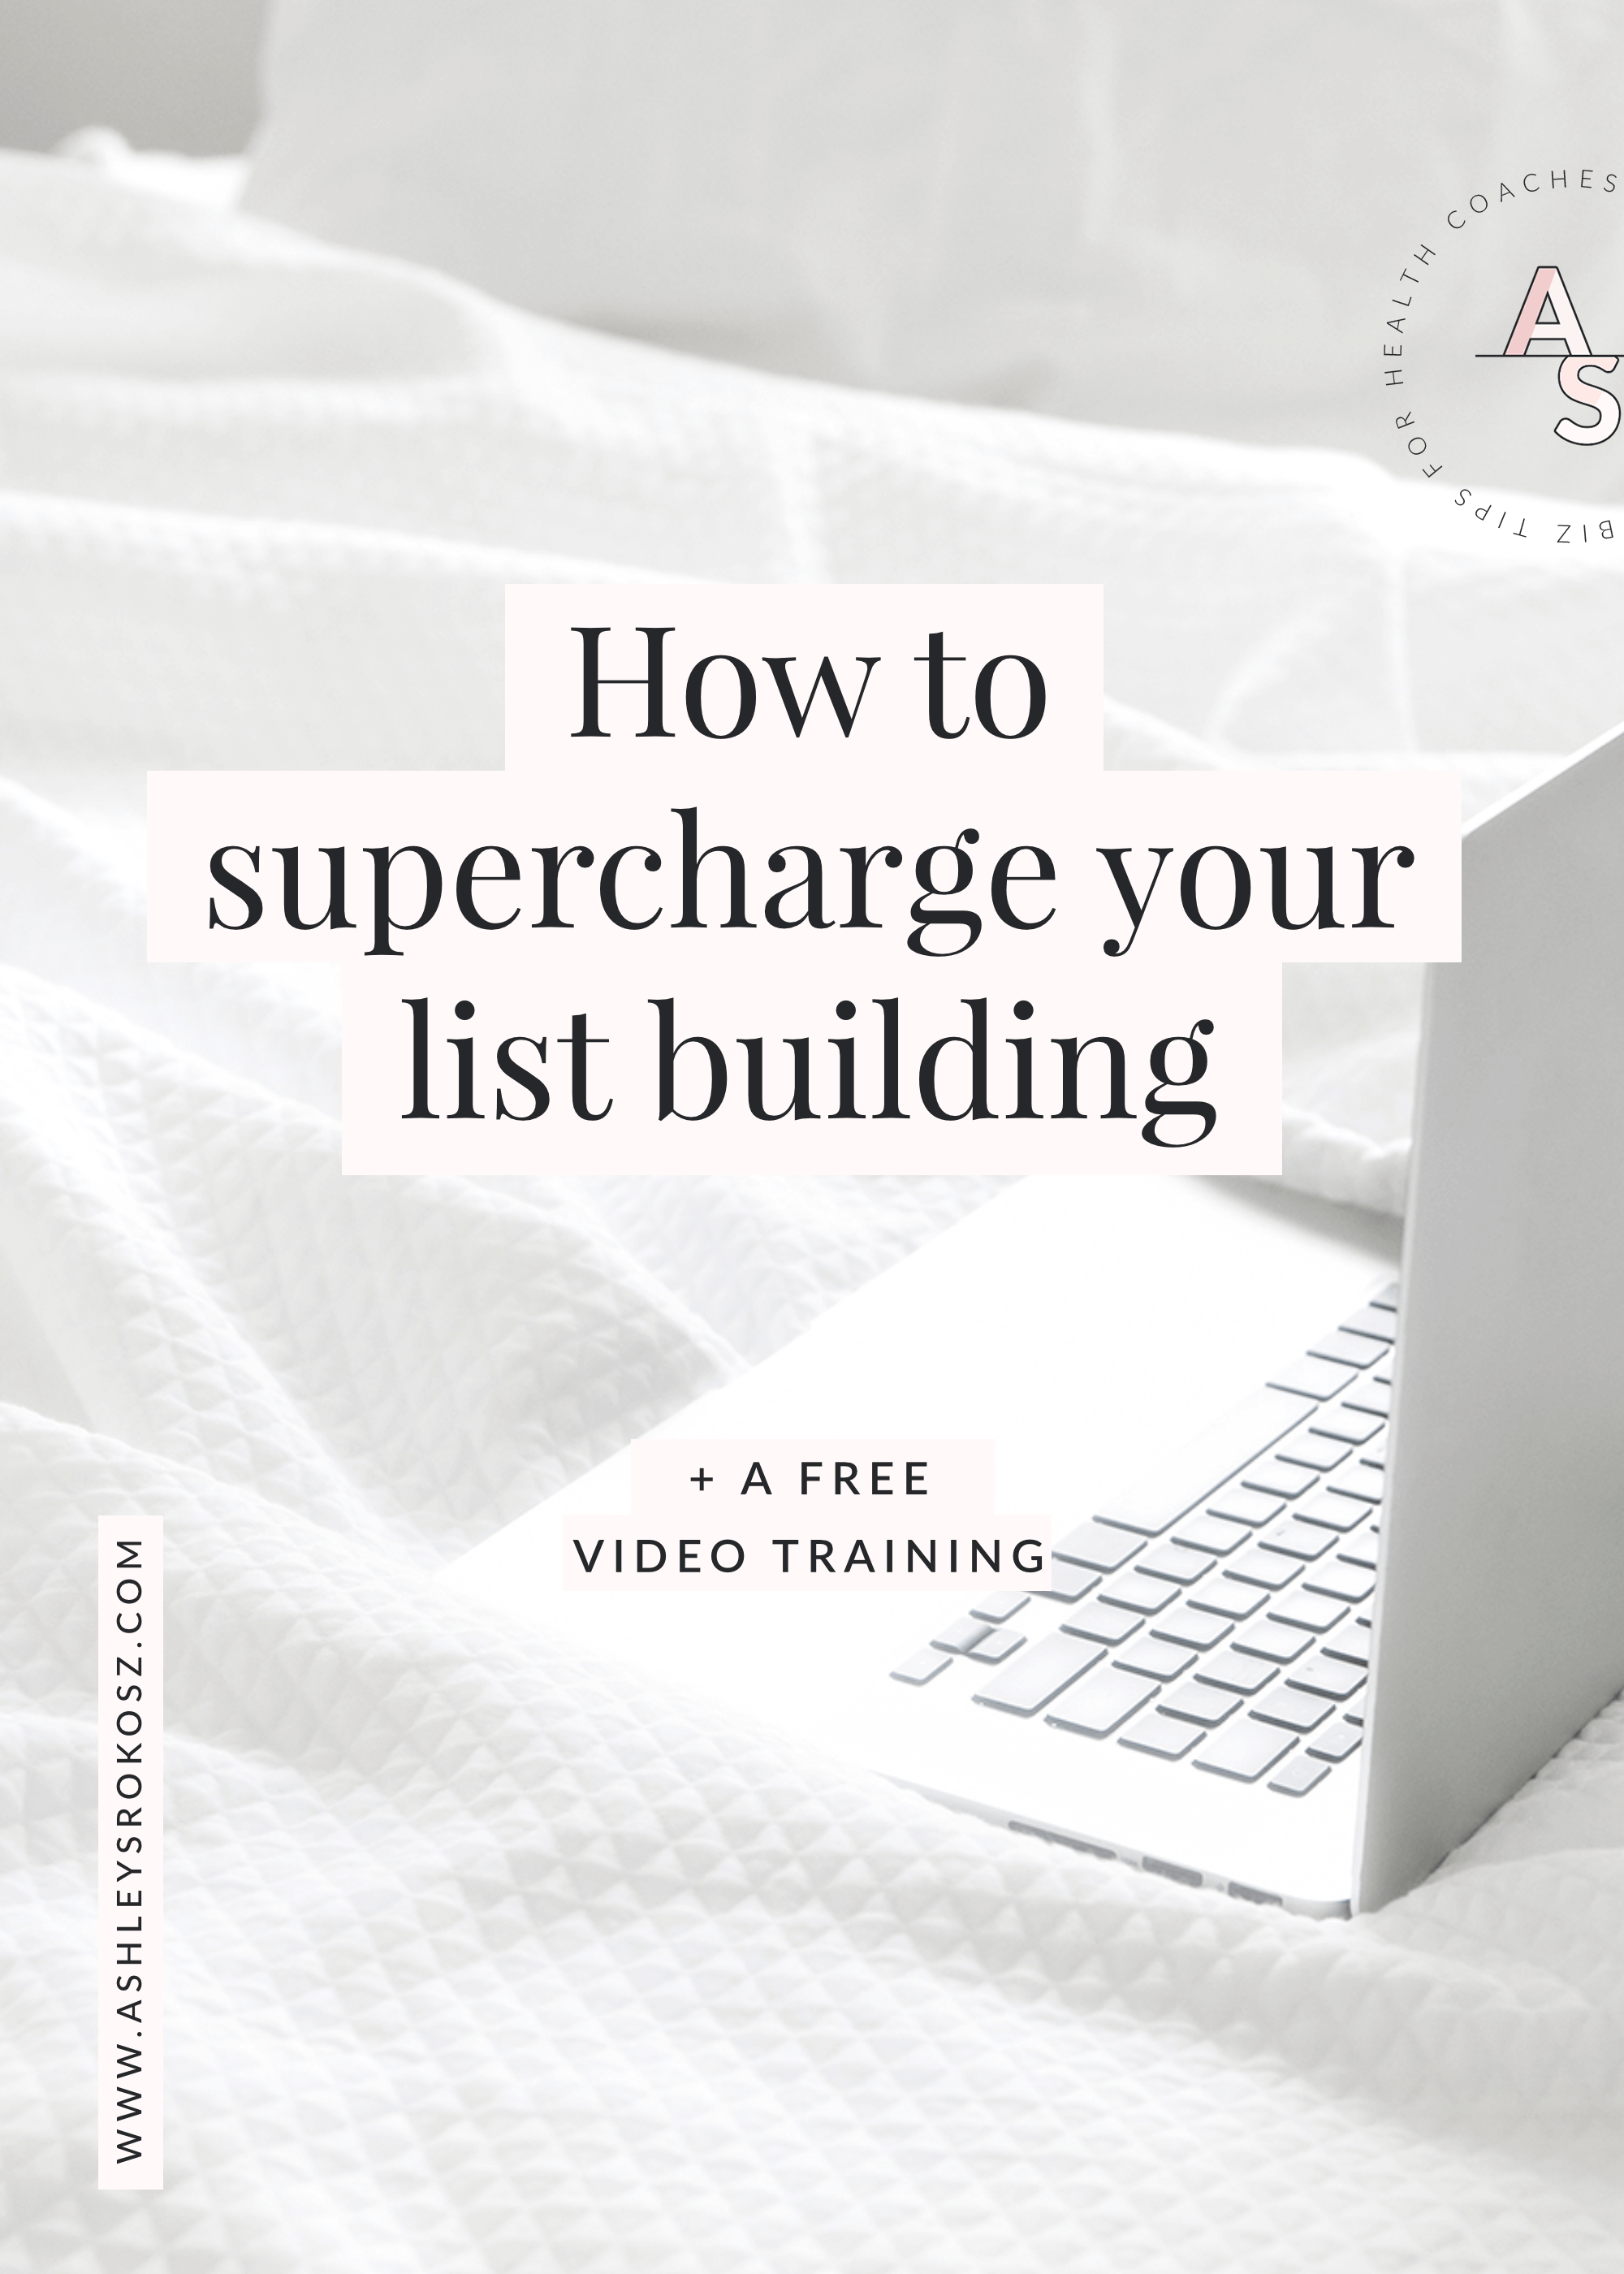 Have you been doing all the right things to build your email list, and it's still taking forever? Try using content upgrades in your blog posts! Click here to learn how Ashley Srokosz, Registered Holistic Nutritionist, used content upgrades on her website to supercharge her list building, leading to over $3,000 in sales of her latest online course (without launching!). PLUS there's a video tutorial showing you how to set them up. This is perfect for holistic nutritionists, health coaches, yoga teachers, or essential oil advocates!